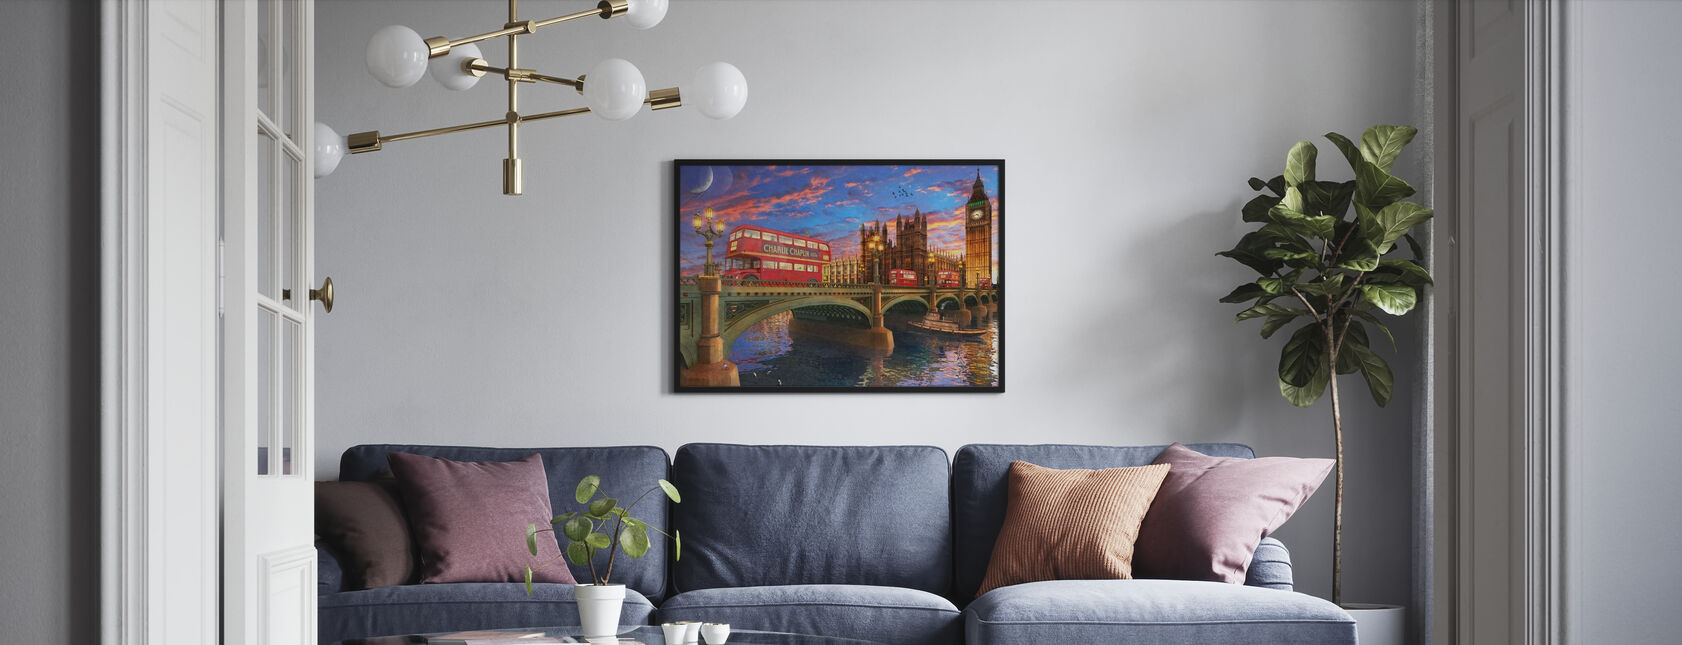 Sunset Over Parliament - Poster - Living Room